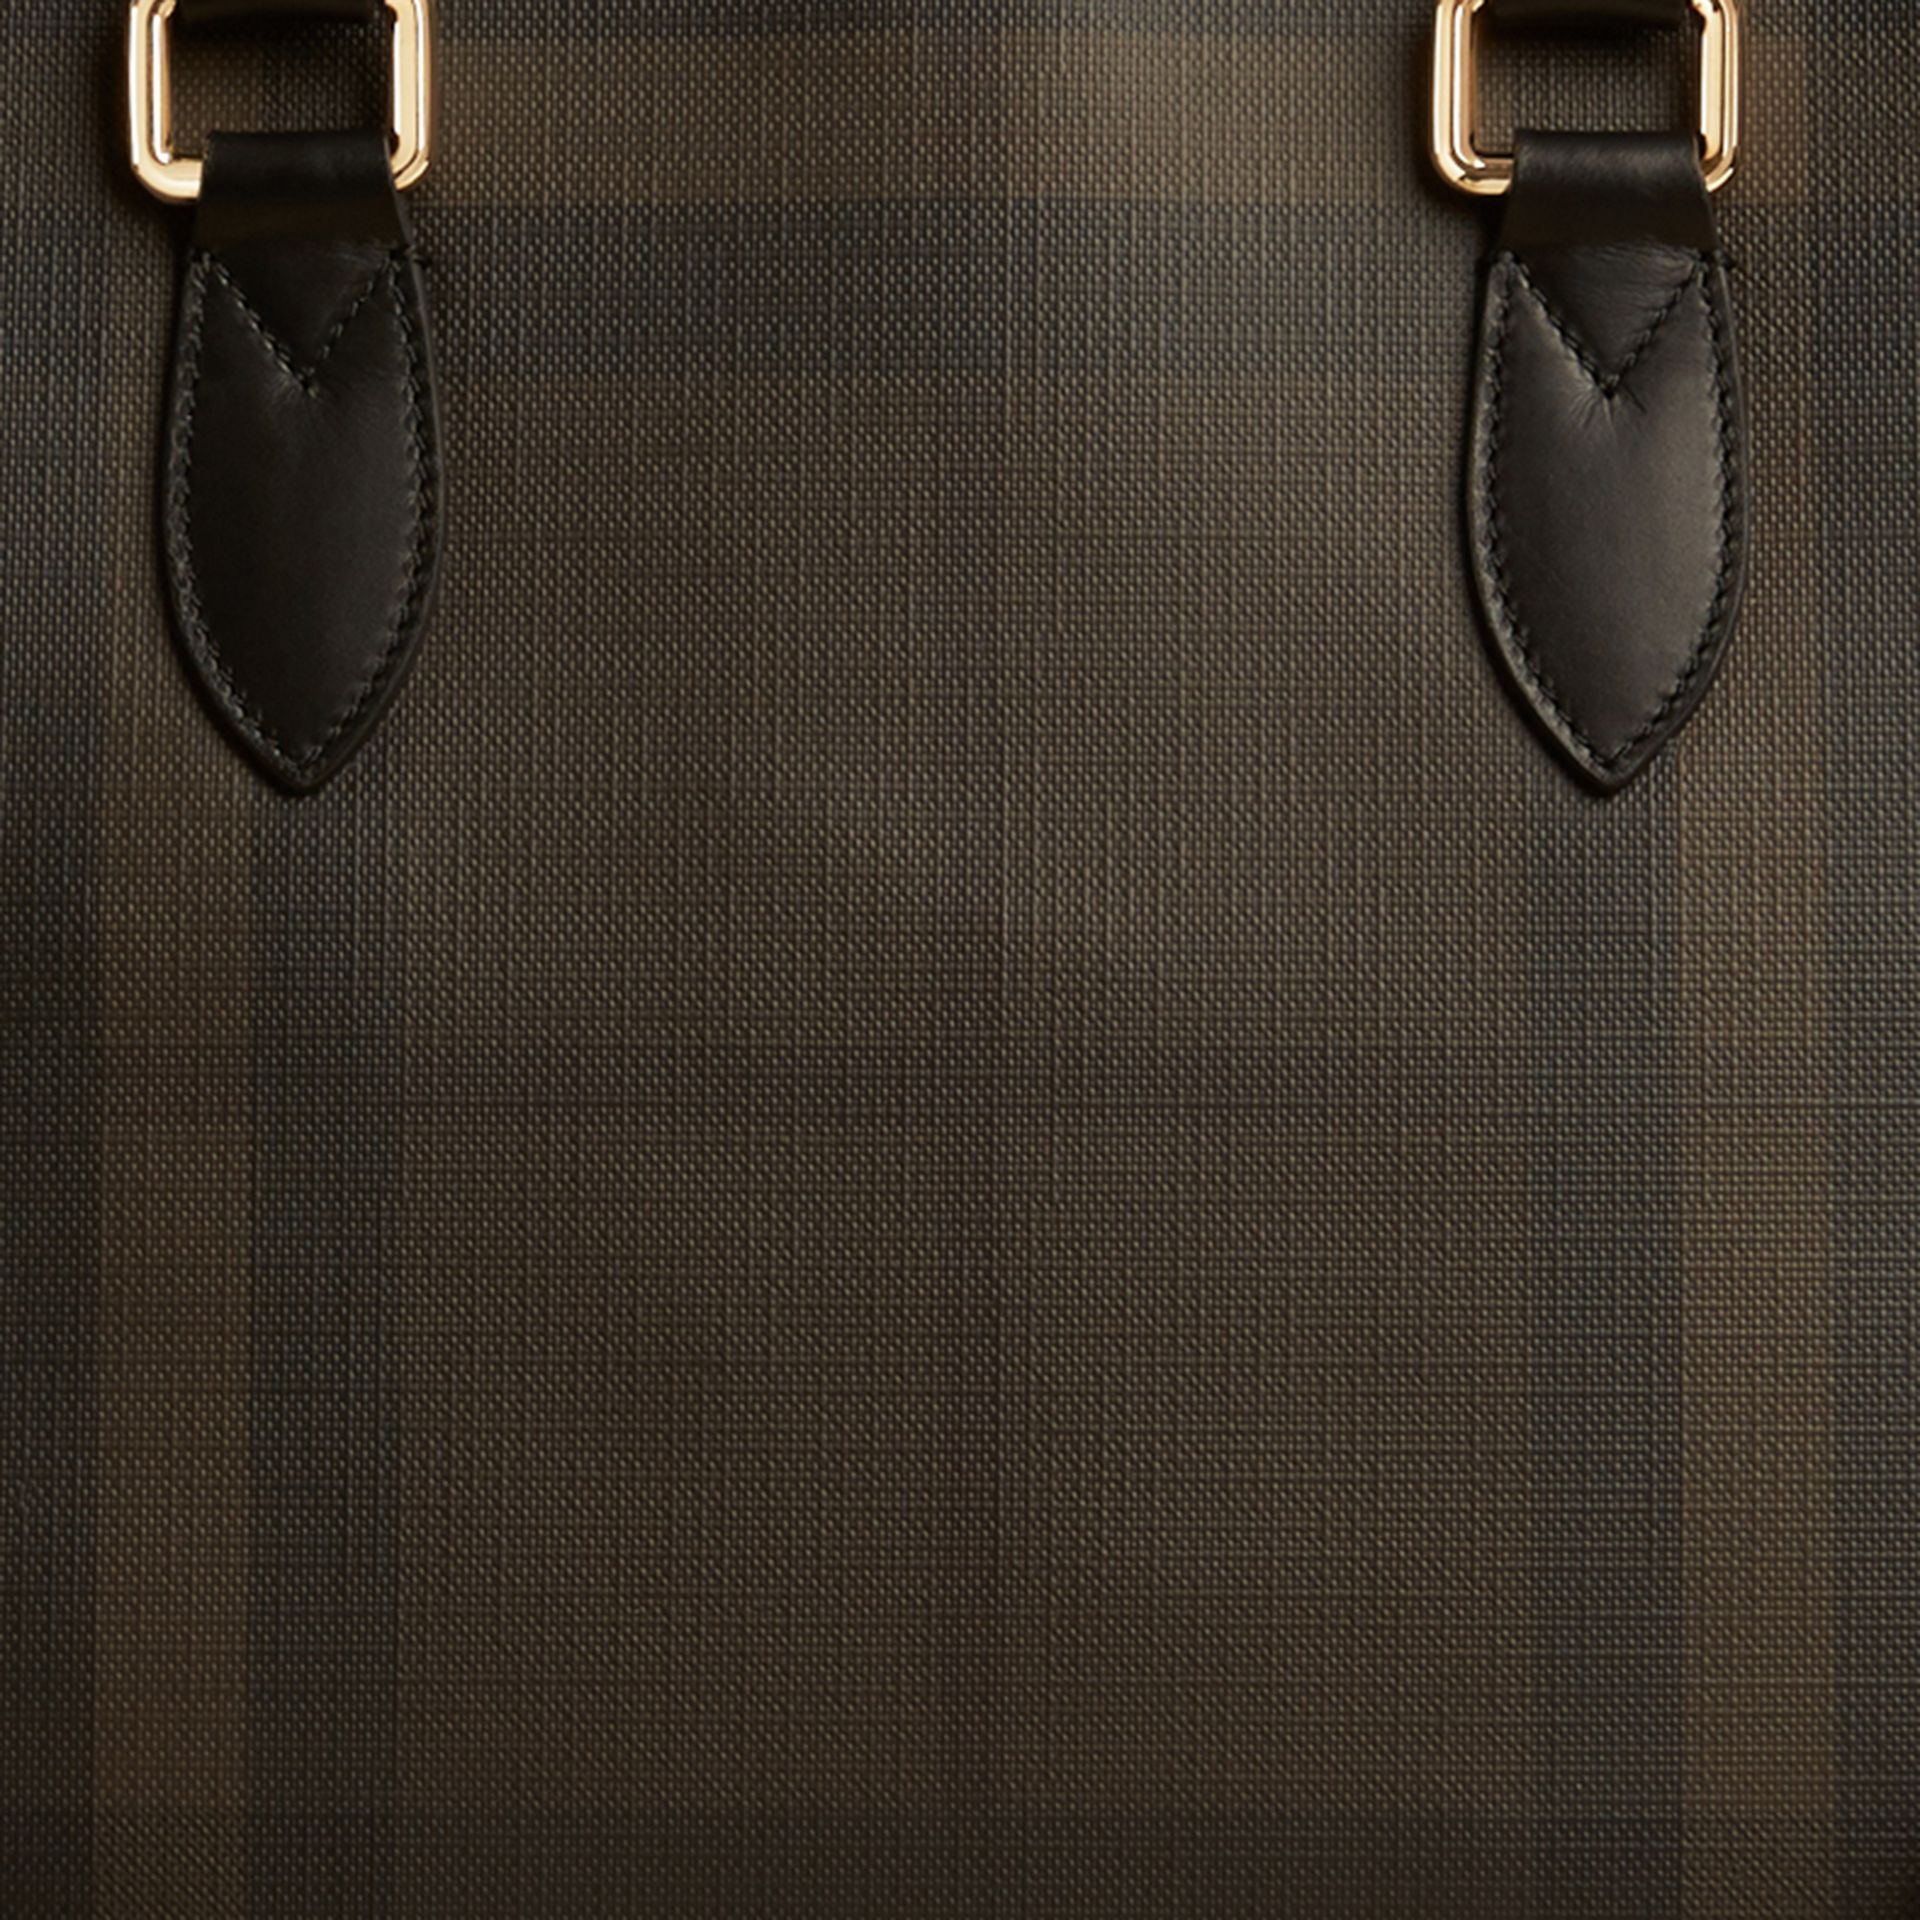 Medium Leather Trim London Check Briefcase in Chocolate/black - Men | Burberry - gallery image 2